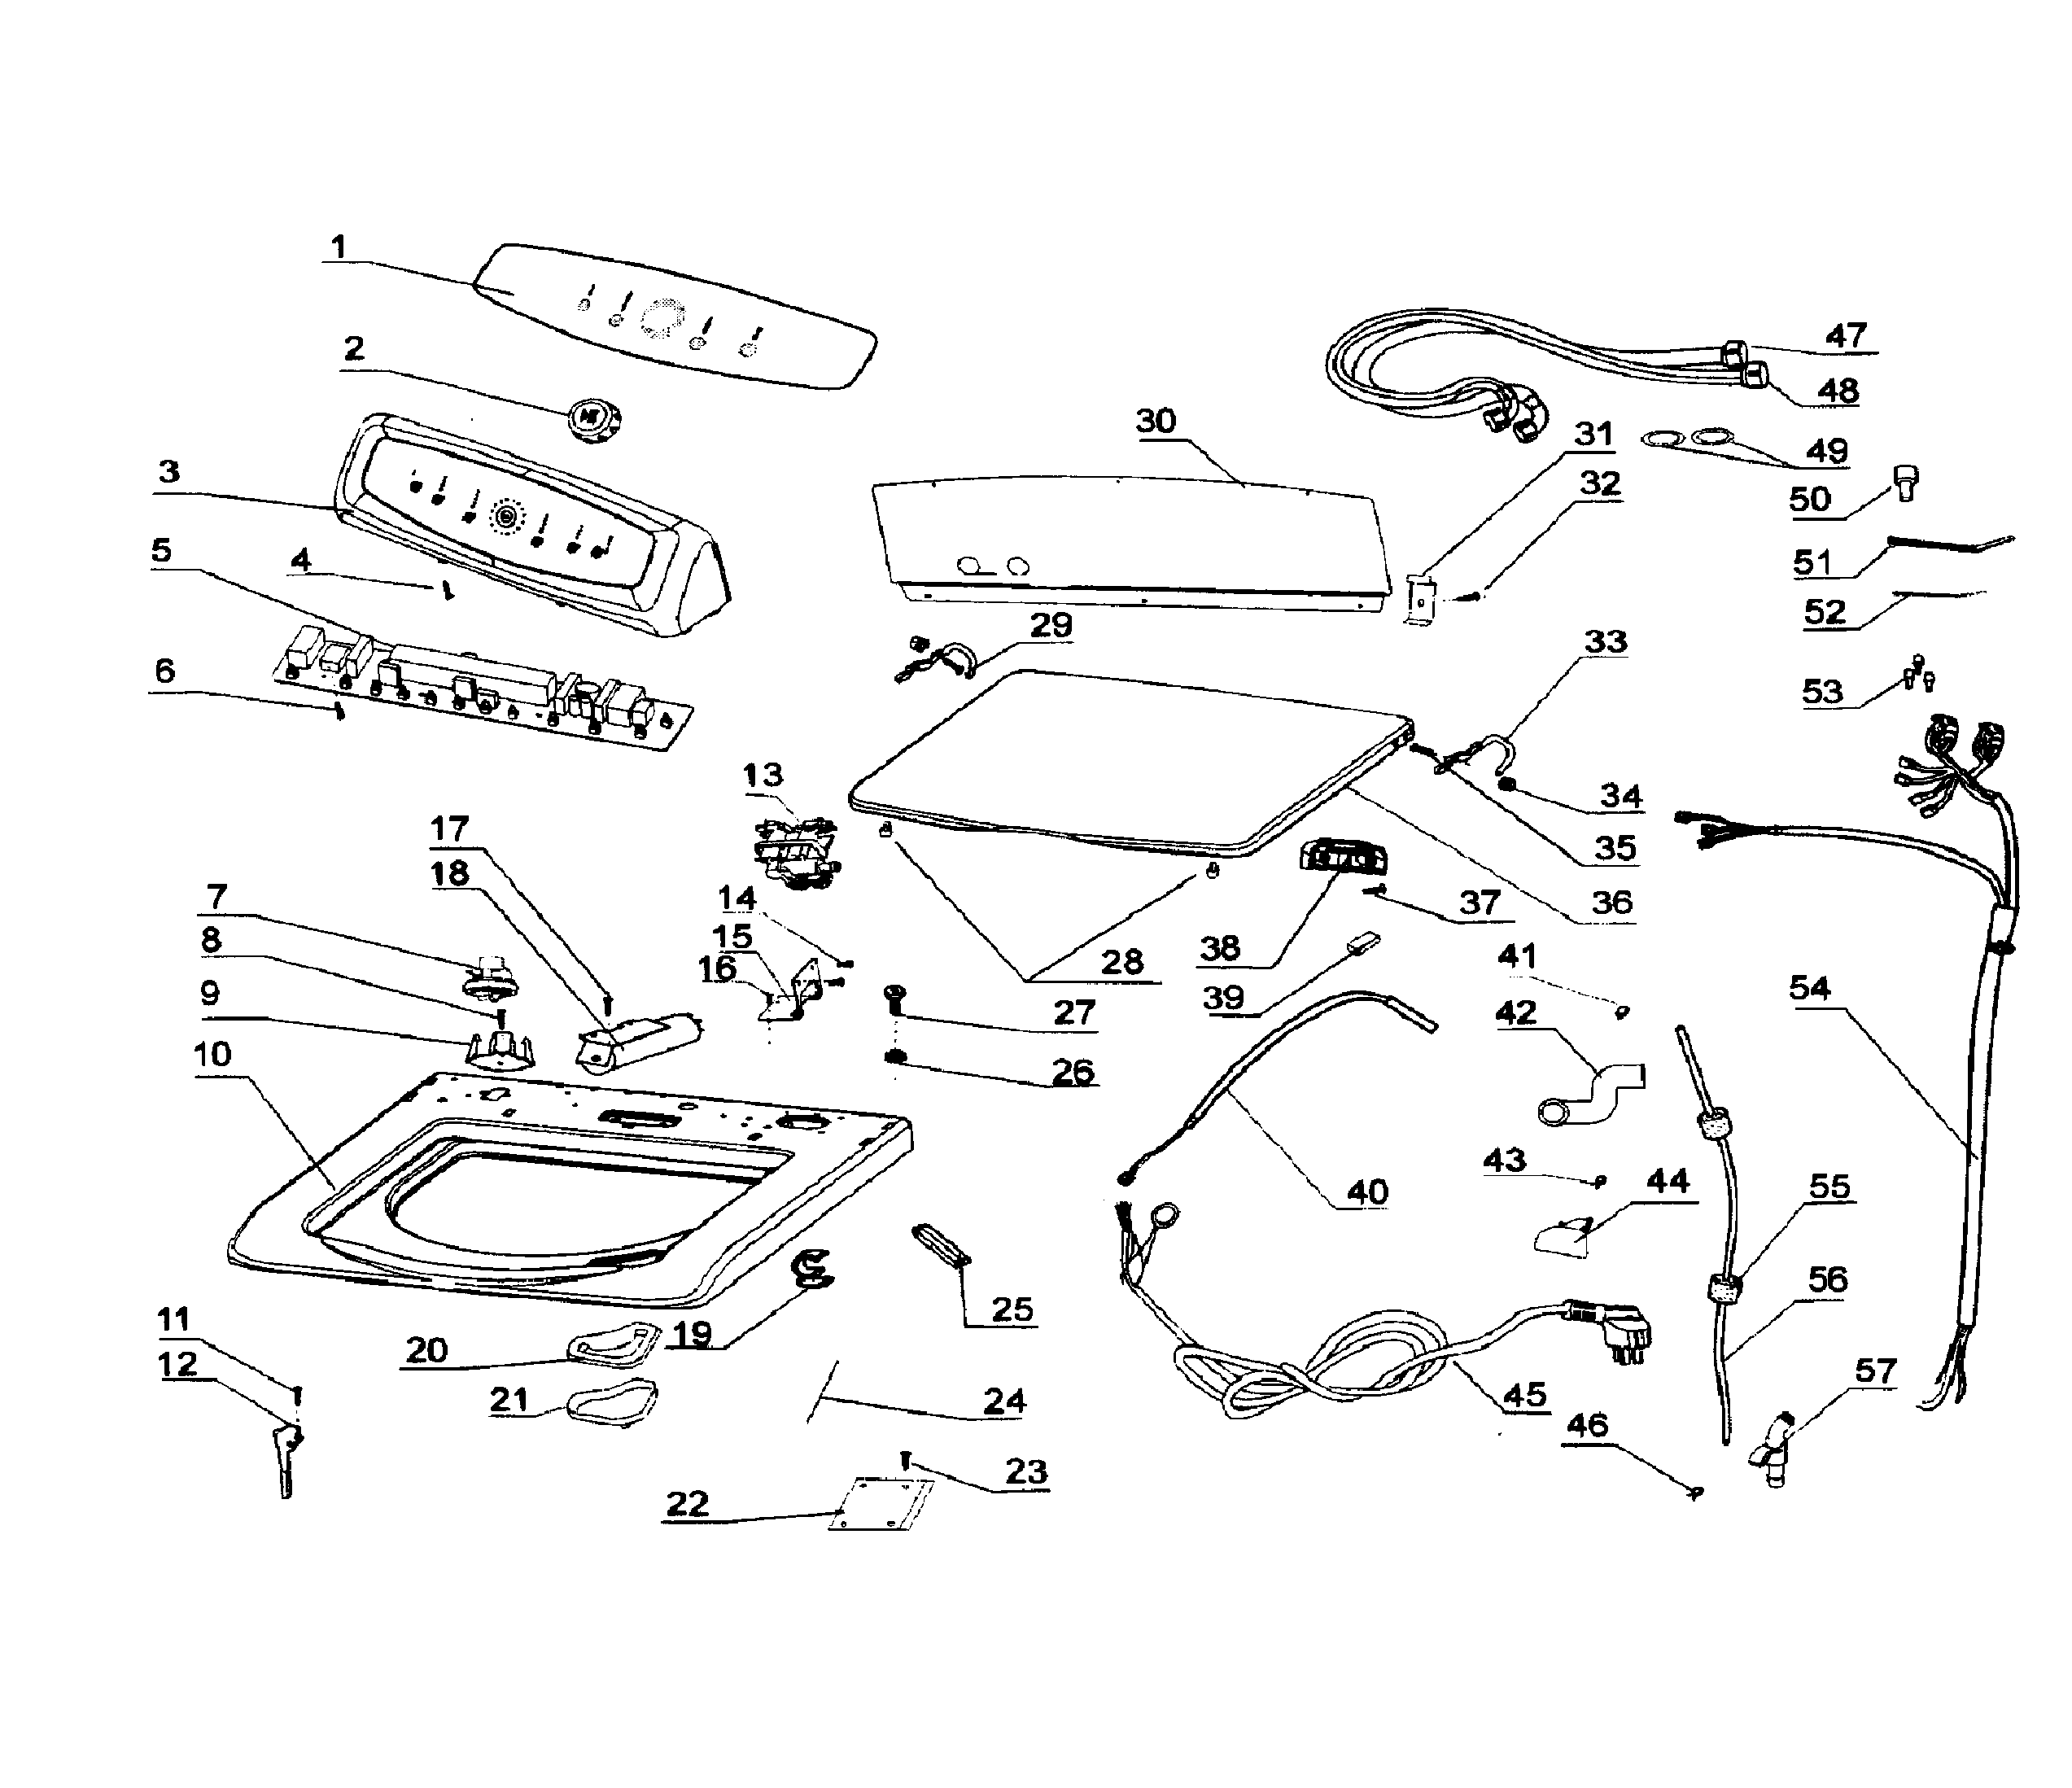 haier rwt360bw parts diagram